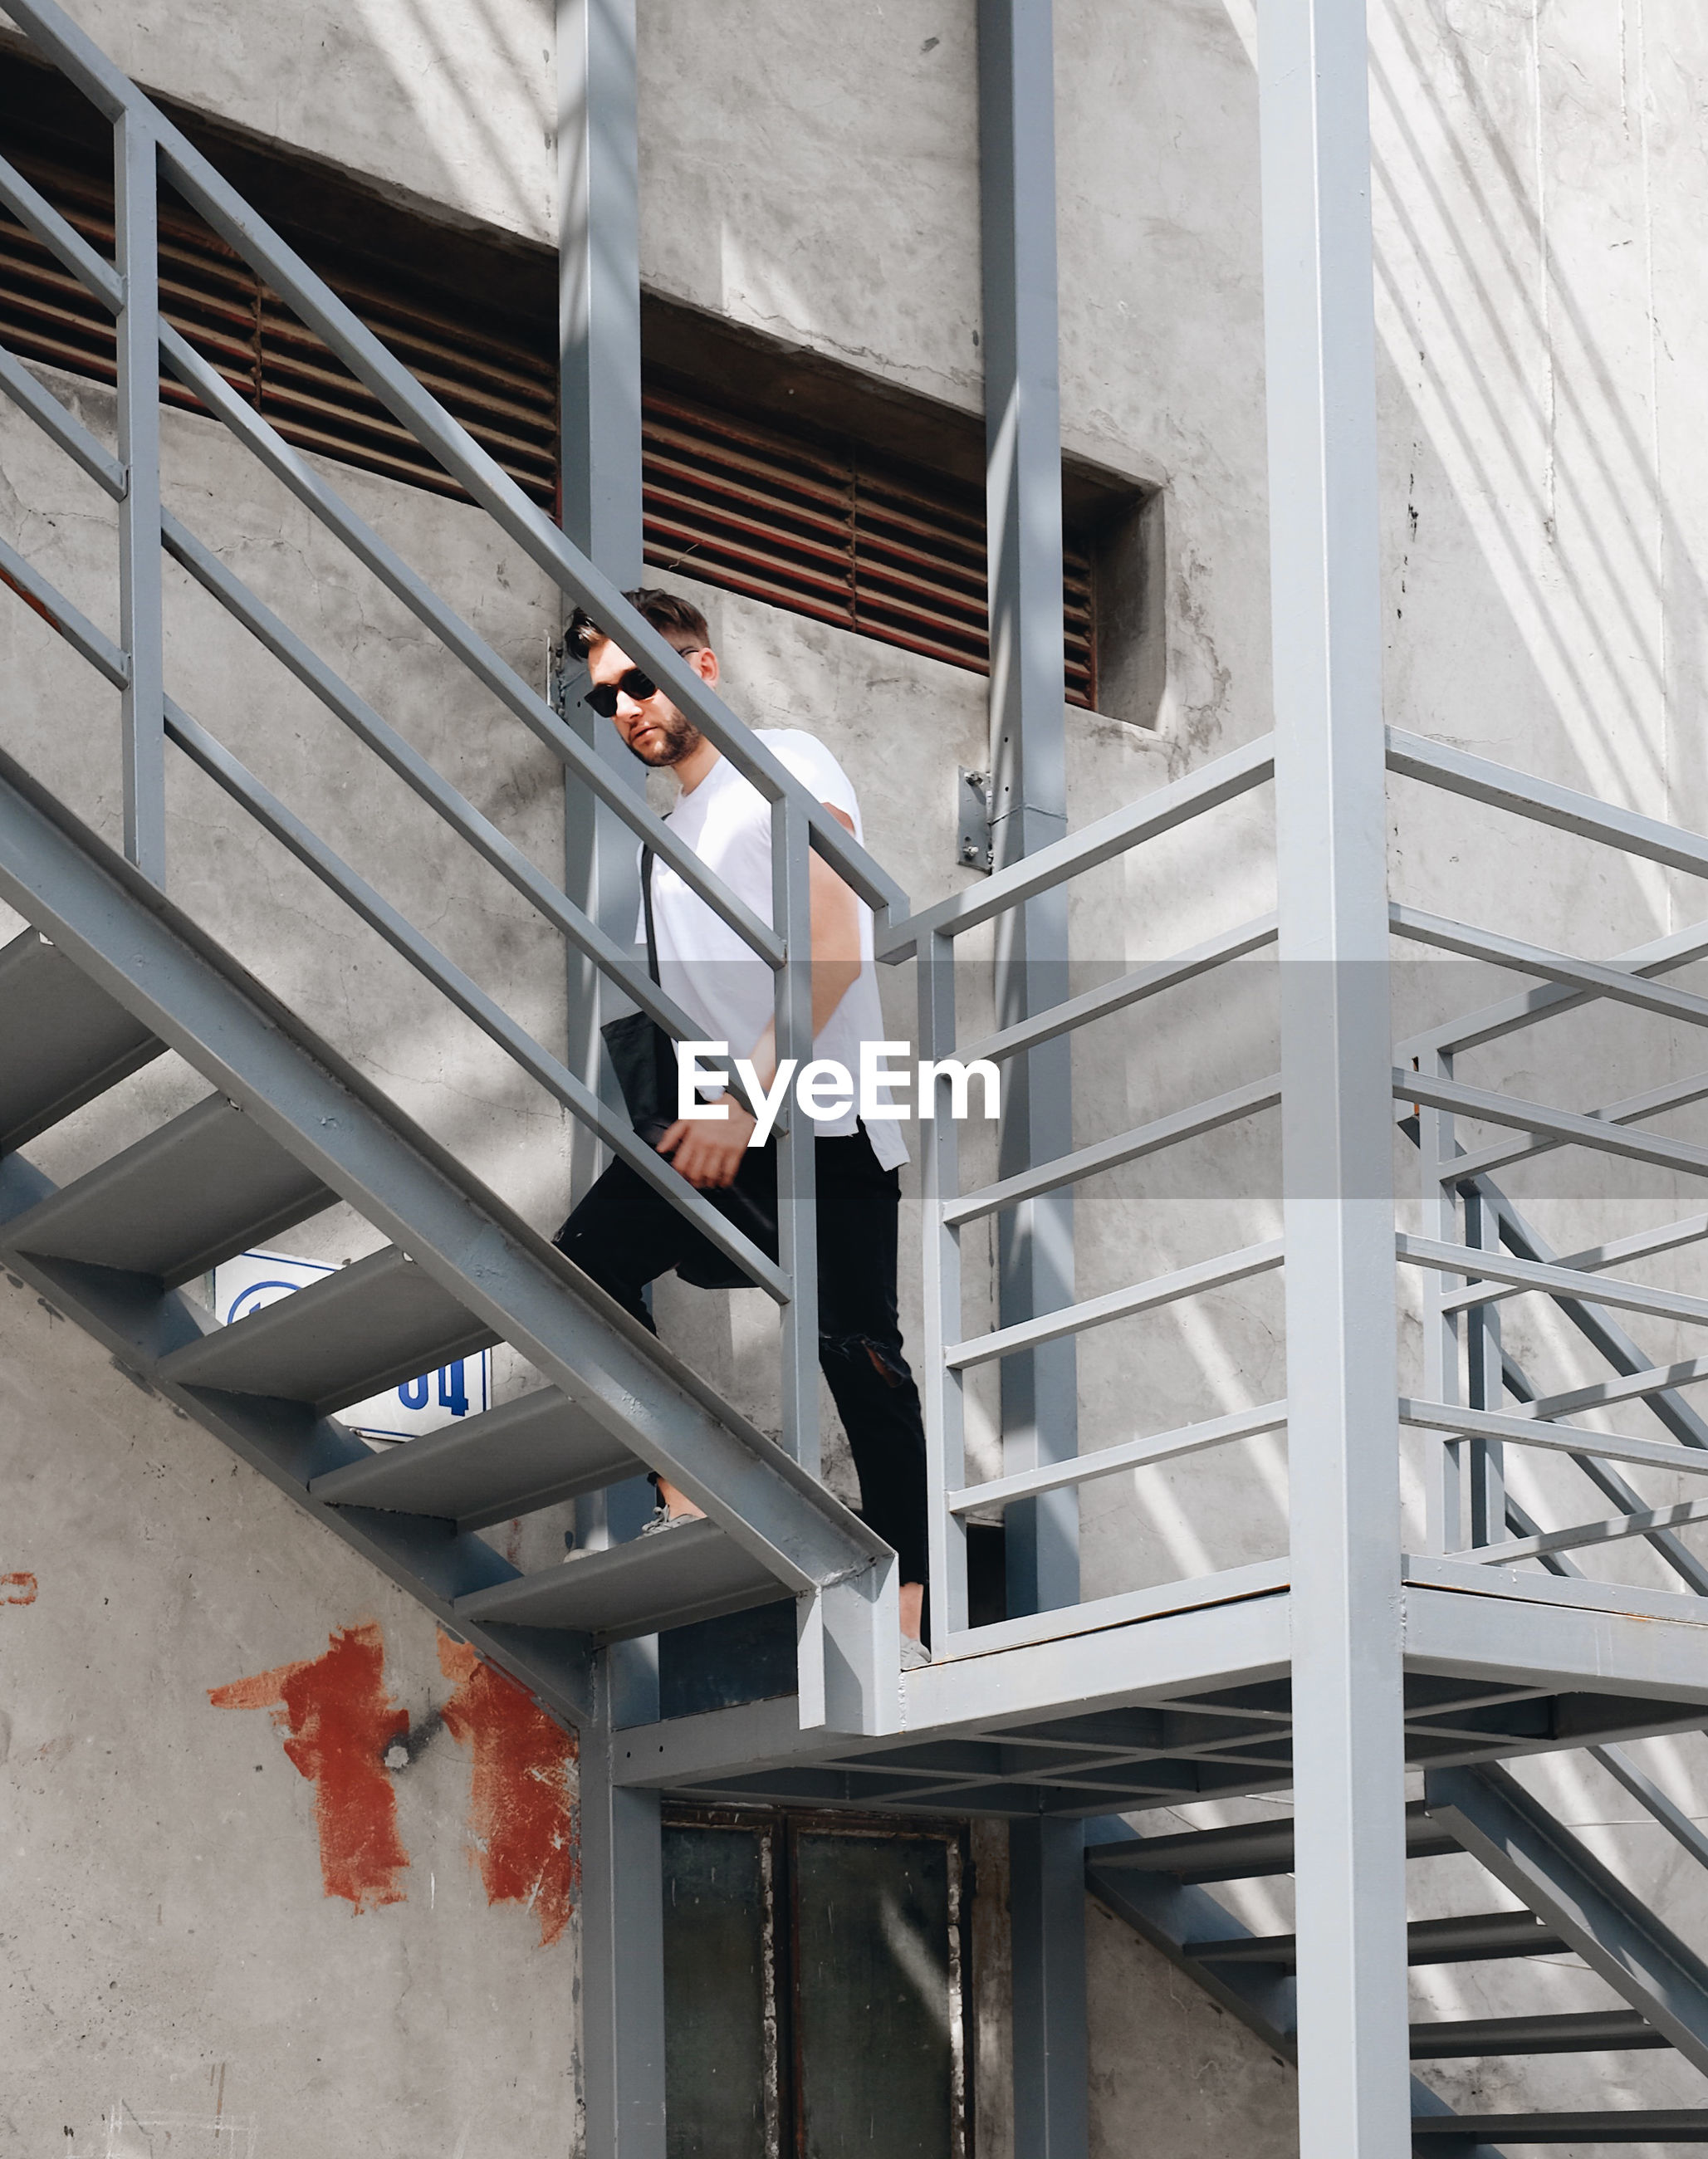 Low angle view of young man moving up on steps